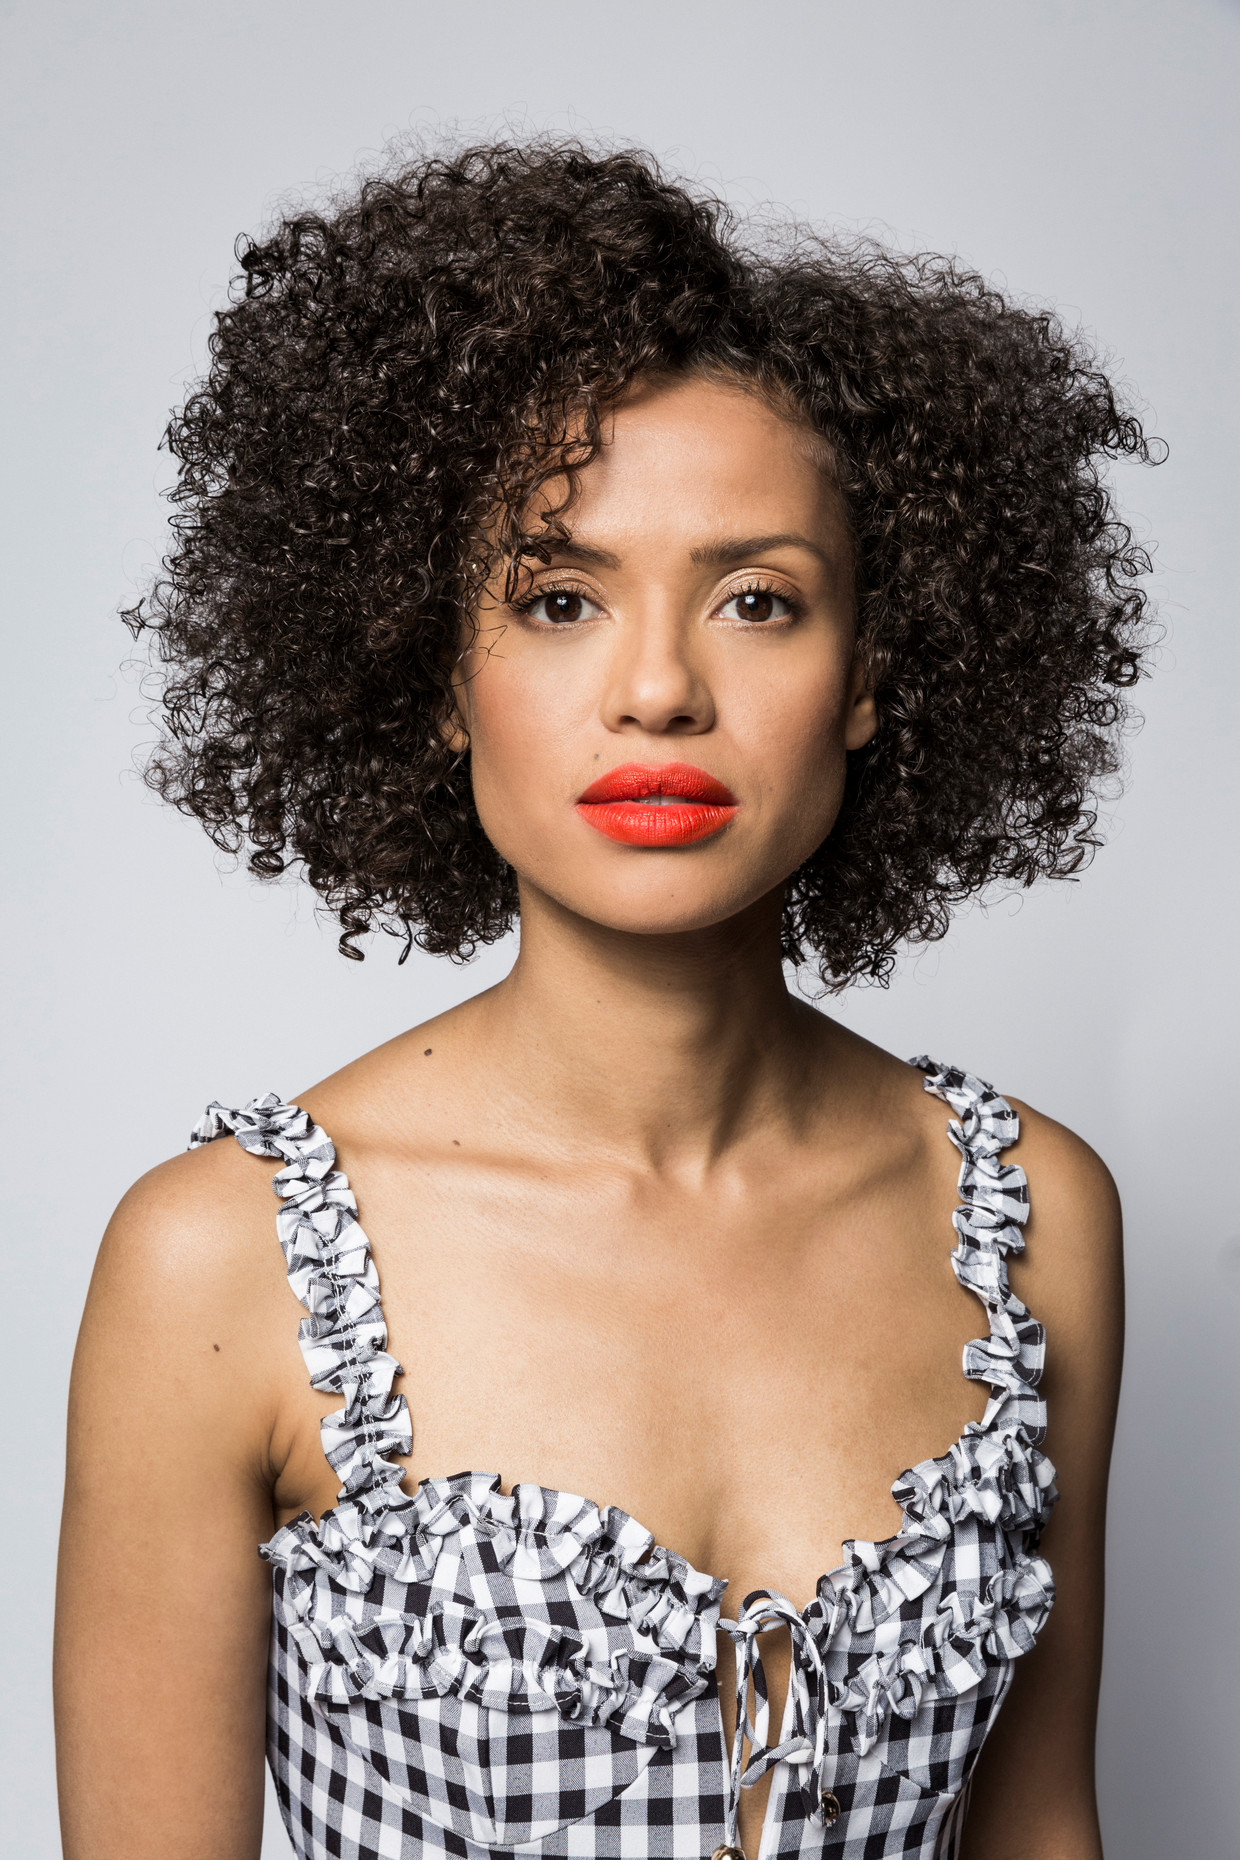 Actrice Gugu Mbatha-Raw. Beeld Contour RA via Getty Images